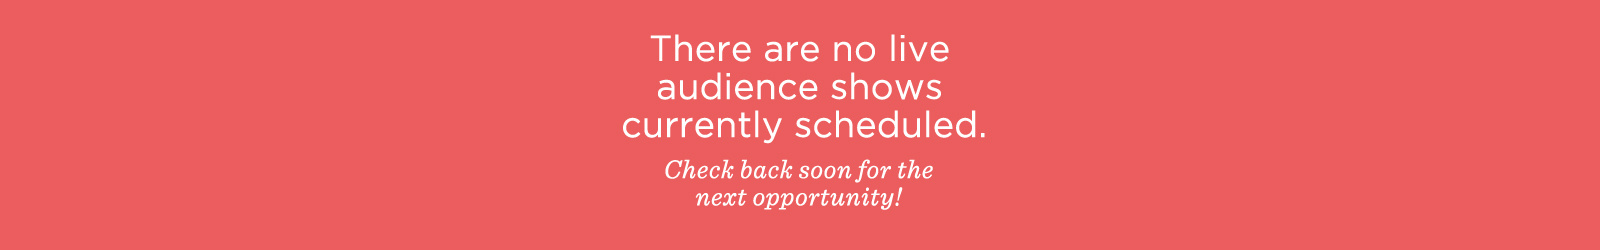 There are no live audience shows currently scheduled. Check back soon for the next opportunity!